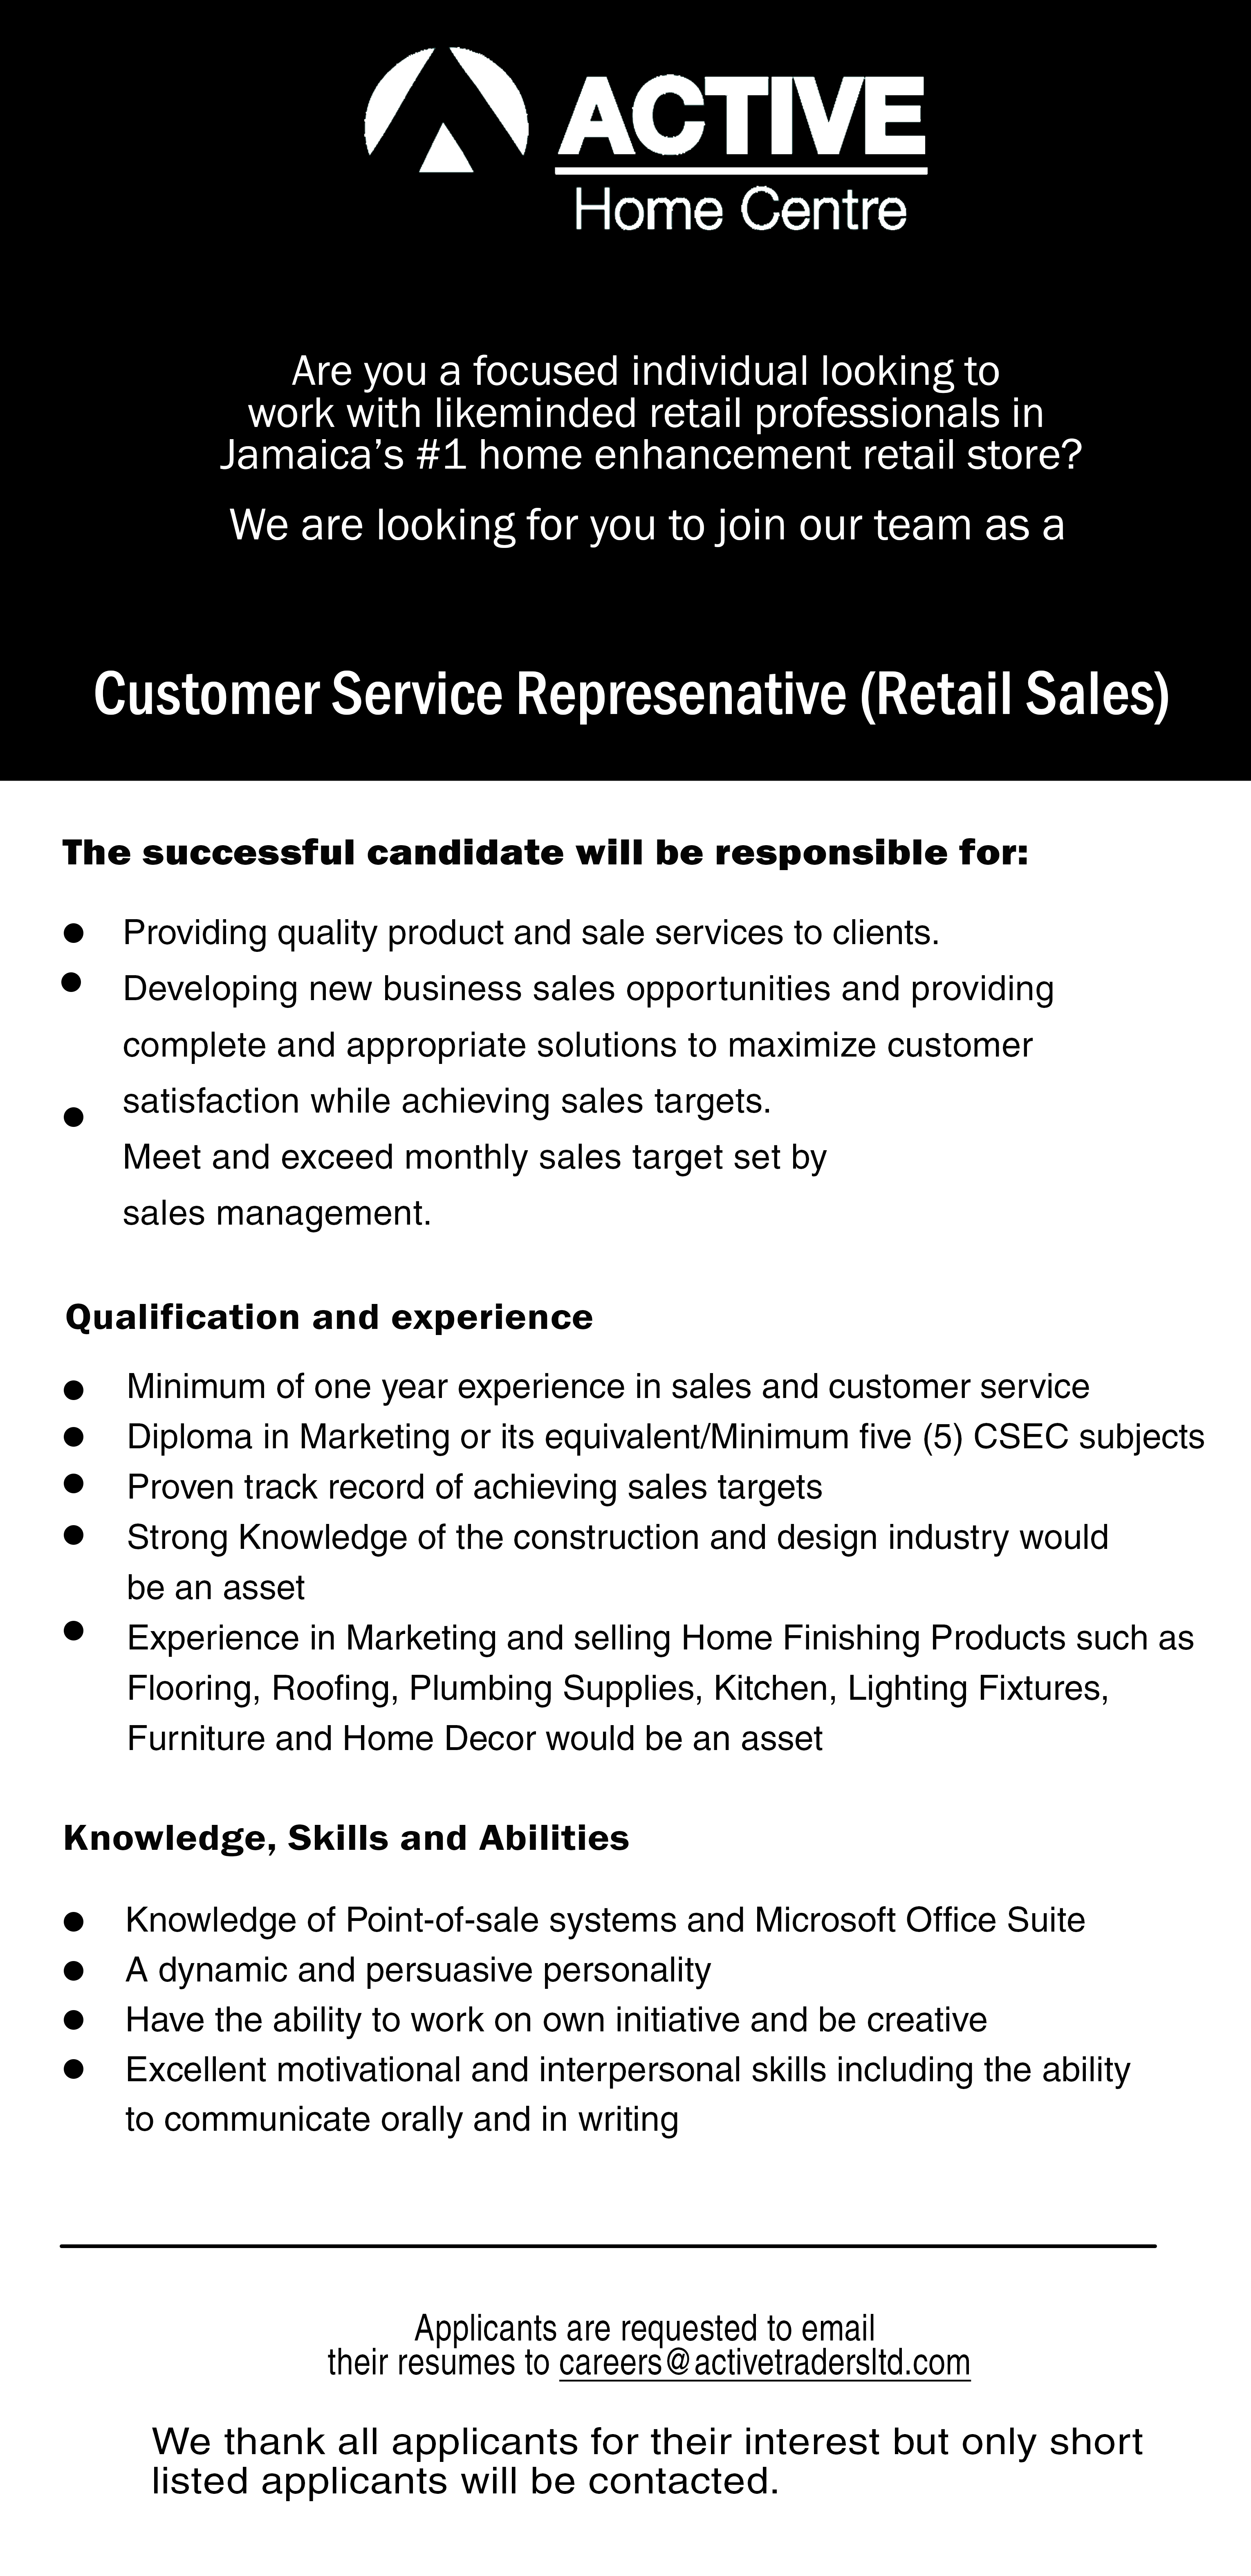 career-listing-csr.png